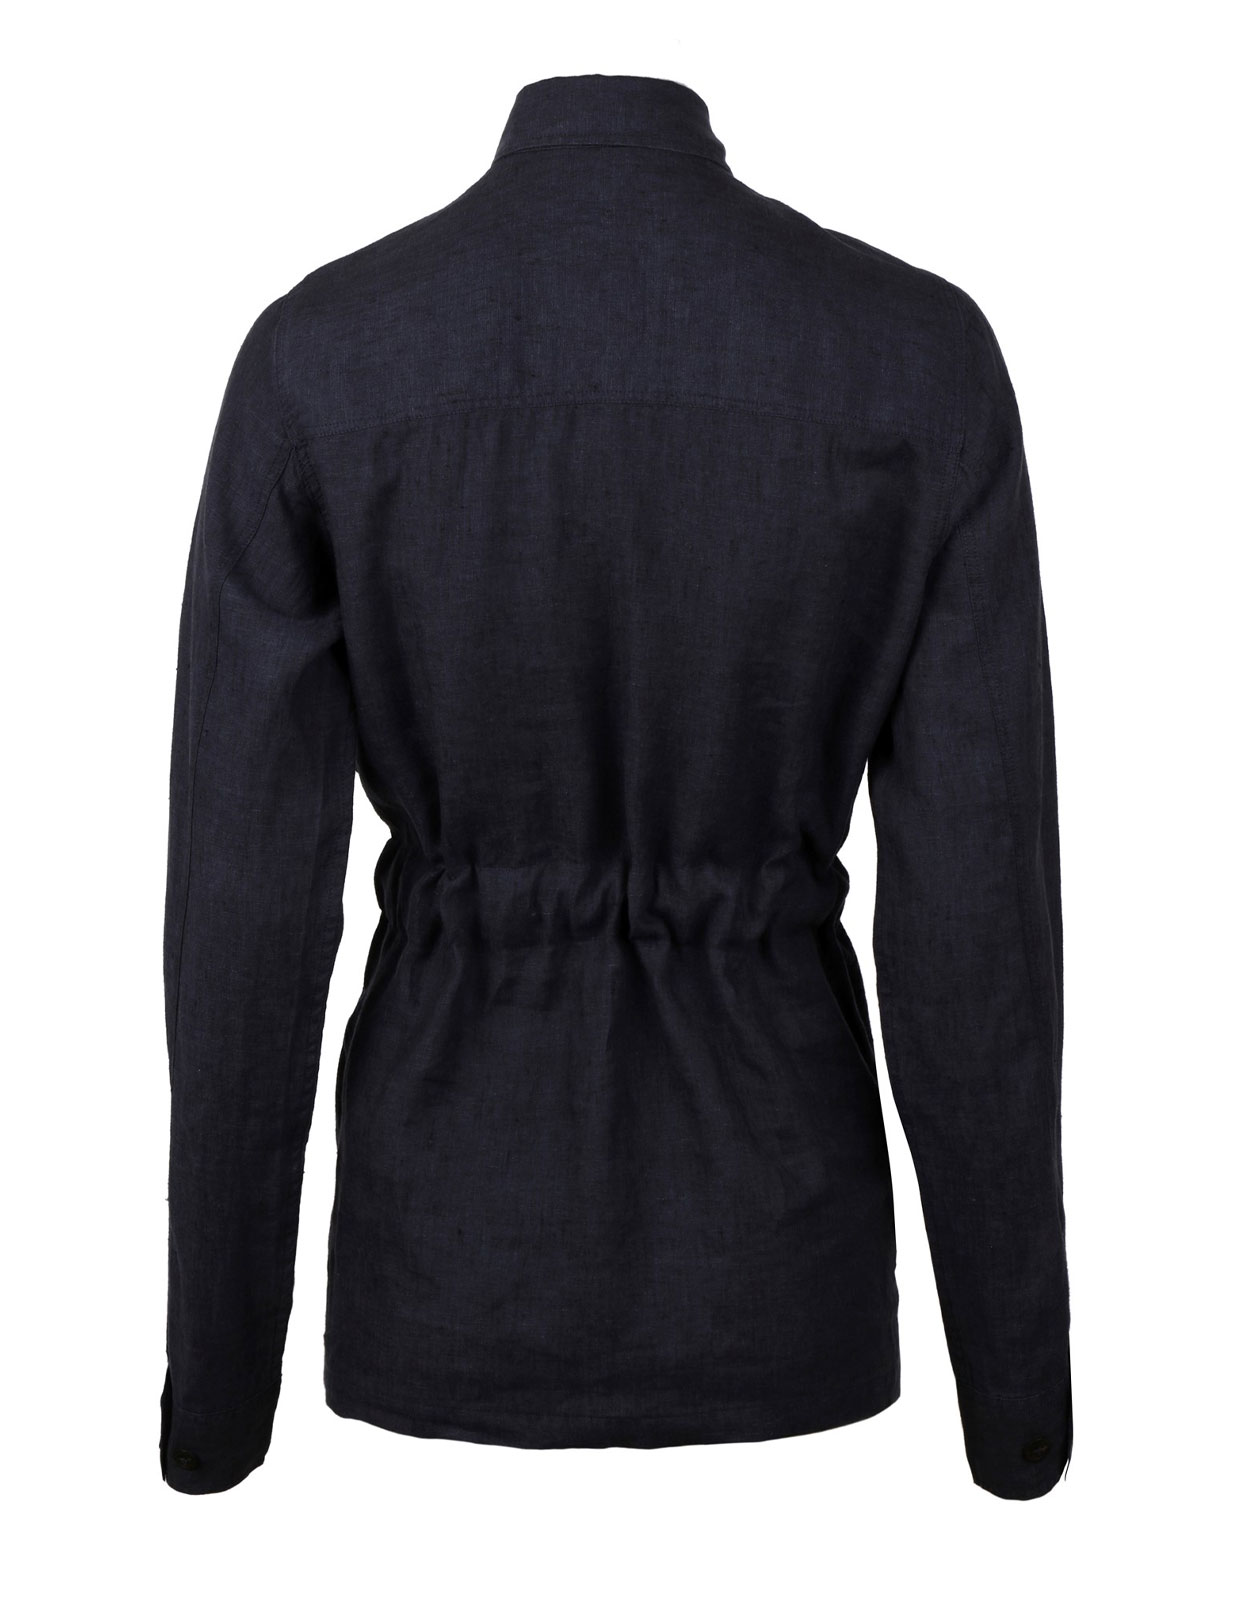 Ally Overshirt Navy